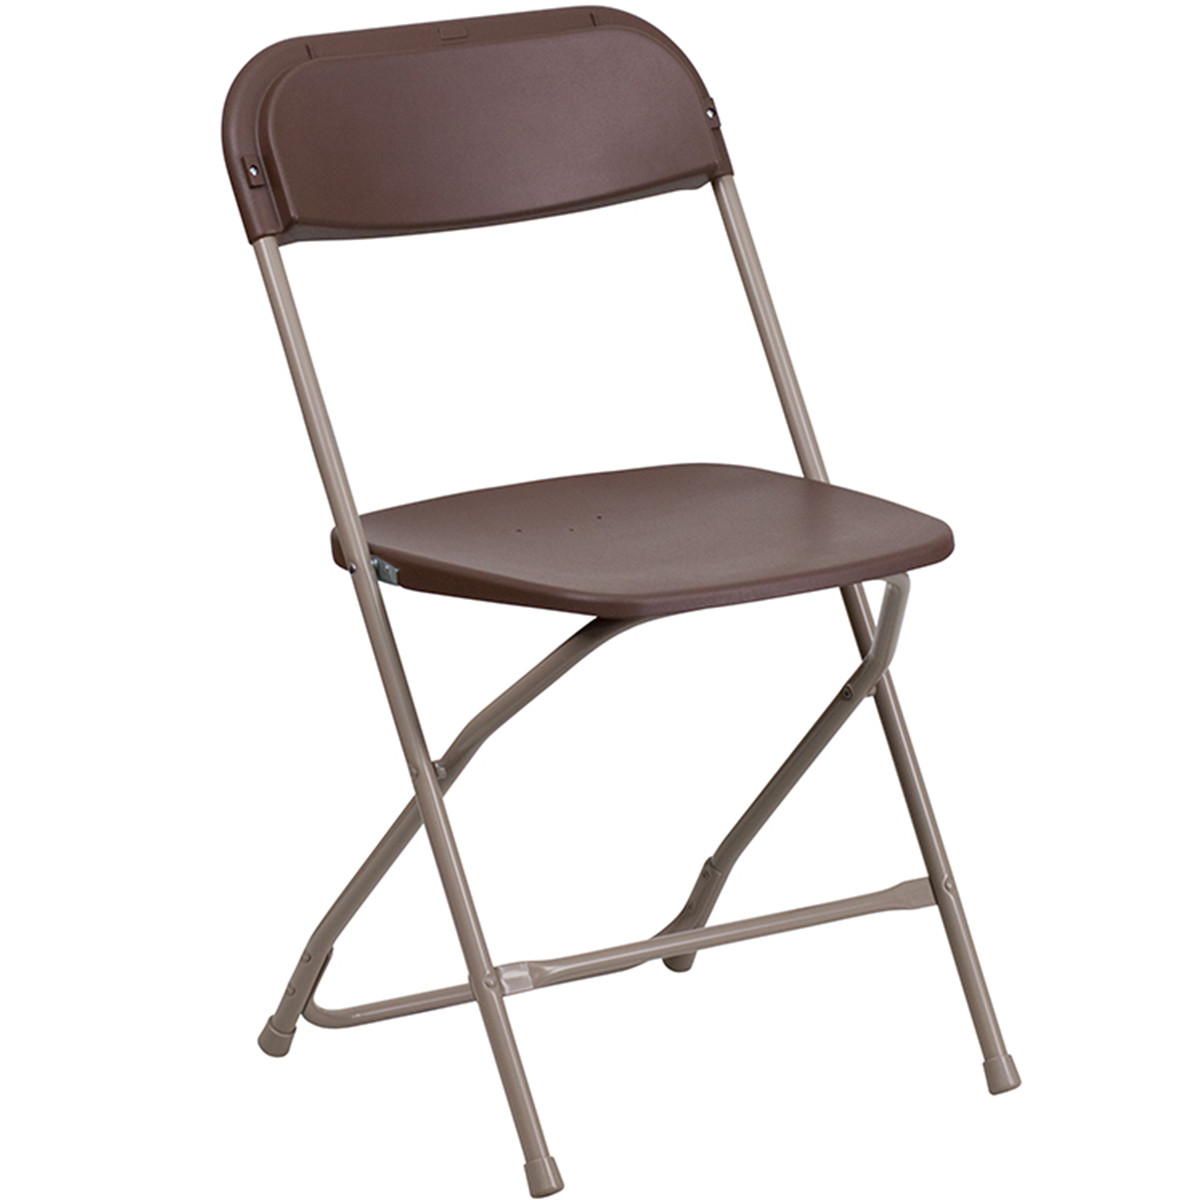 Excellent Brown Plastic Folding Chairs Le L 3 Brown Gg Gamerscity Chair Design For Home Gamerscityorg